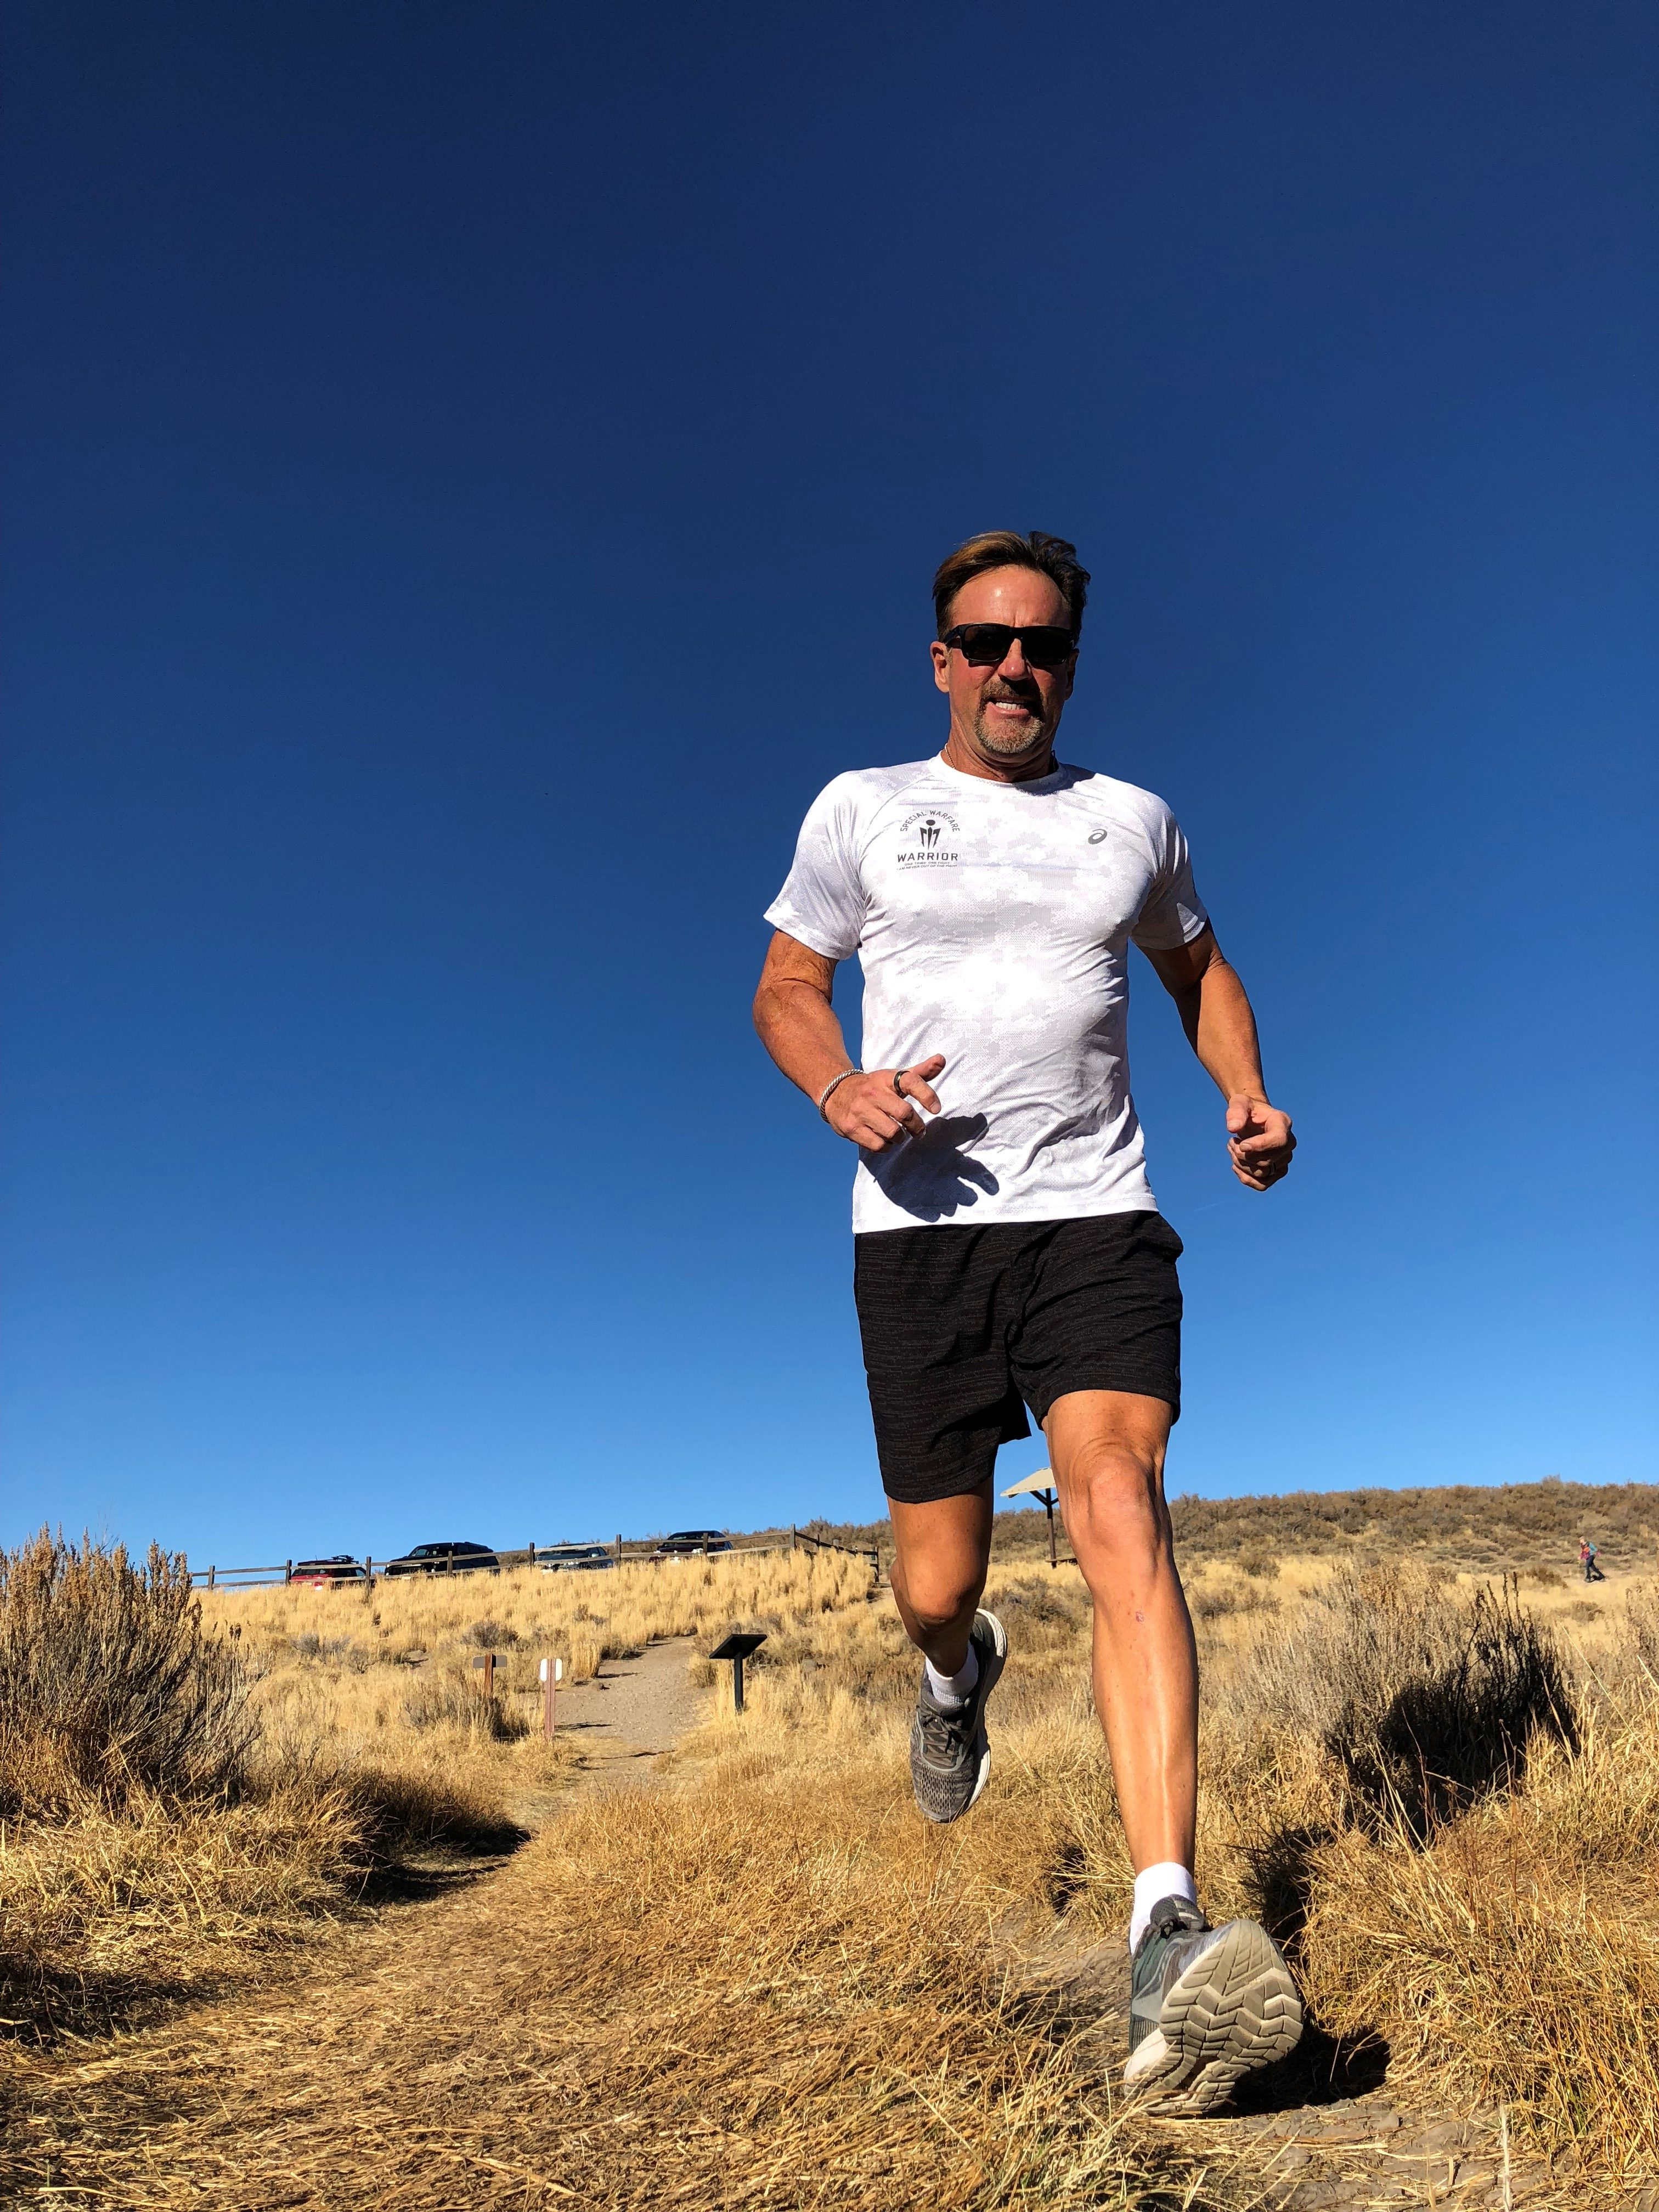 Andy Wirth, who formed Team Special Warfare Warrior, trains for an upcoming race. Wirth is participating in one sporting event each month to raise funds for veterans' groups.